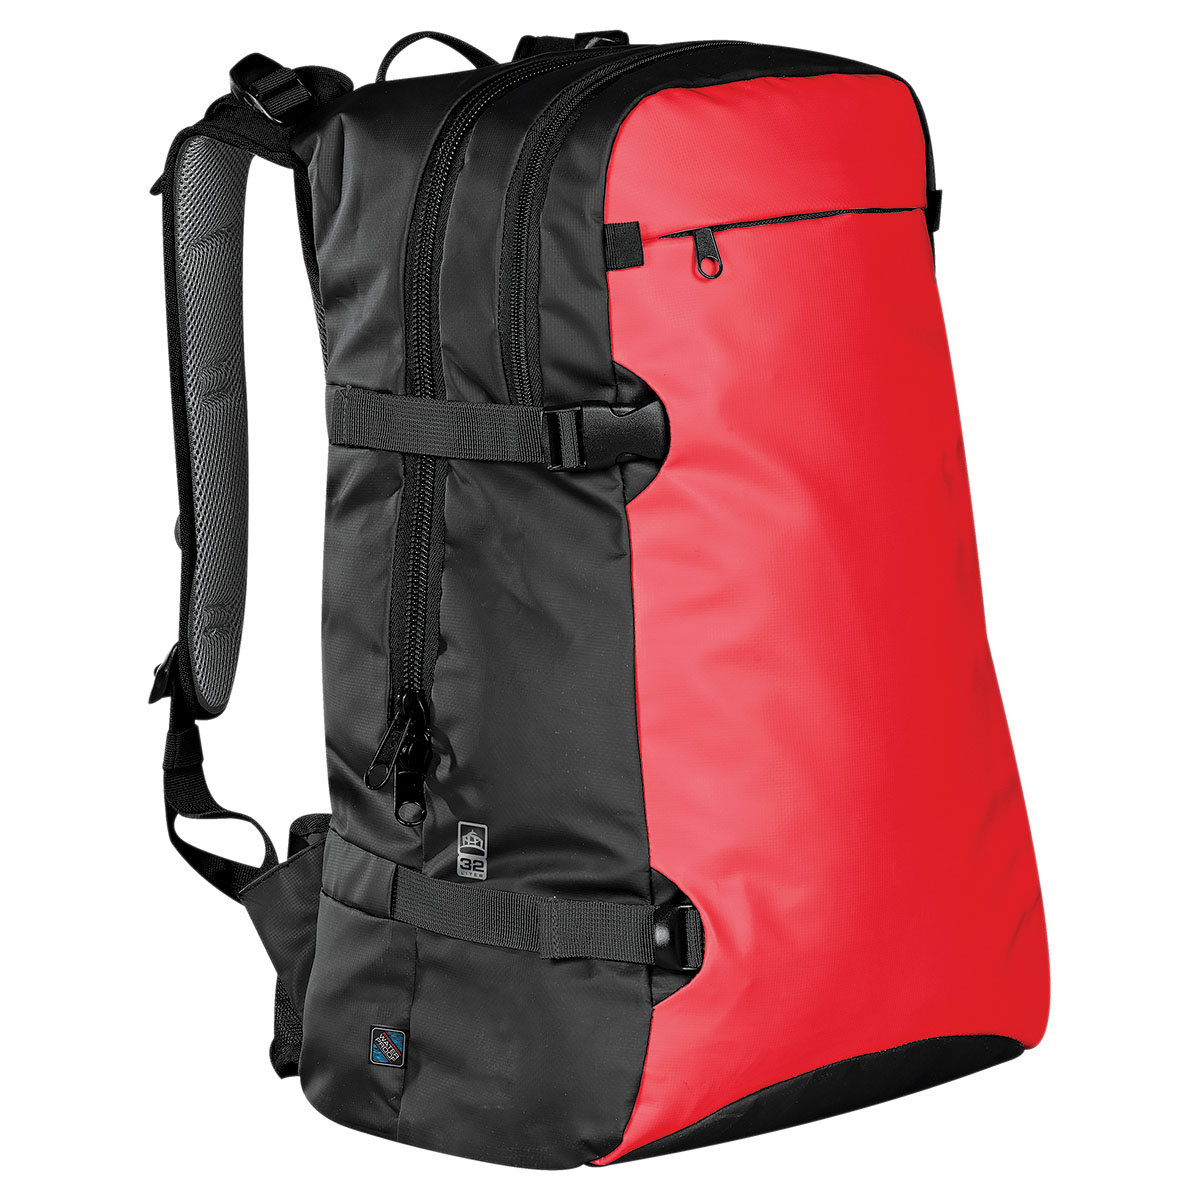 Stormtech Mariner Waterproof Backpack